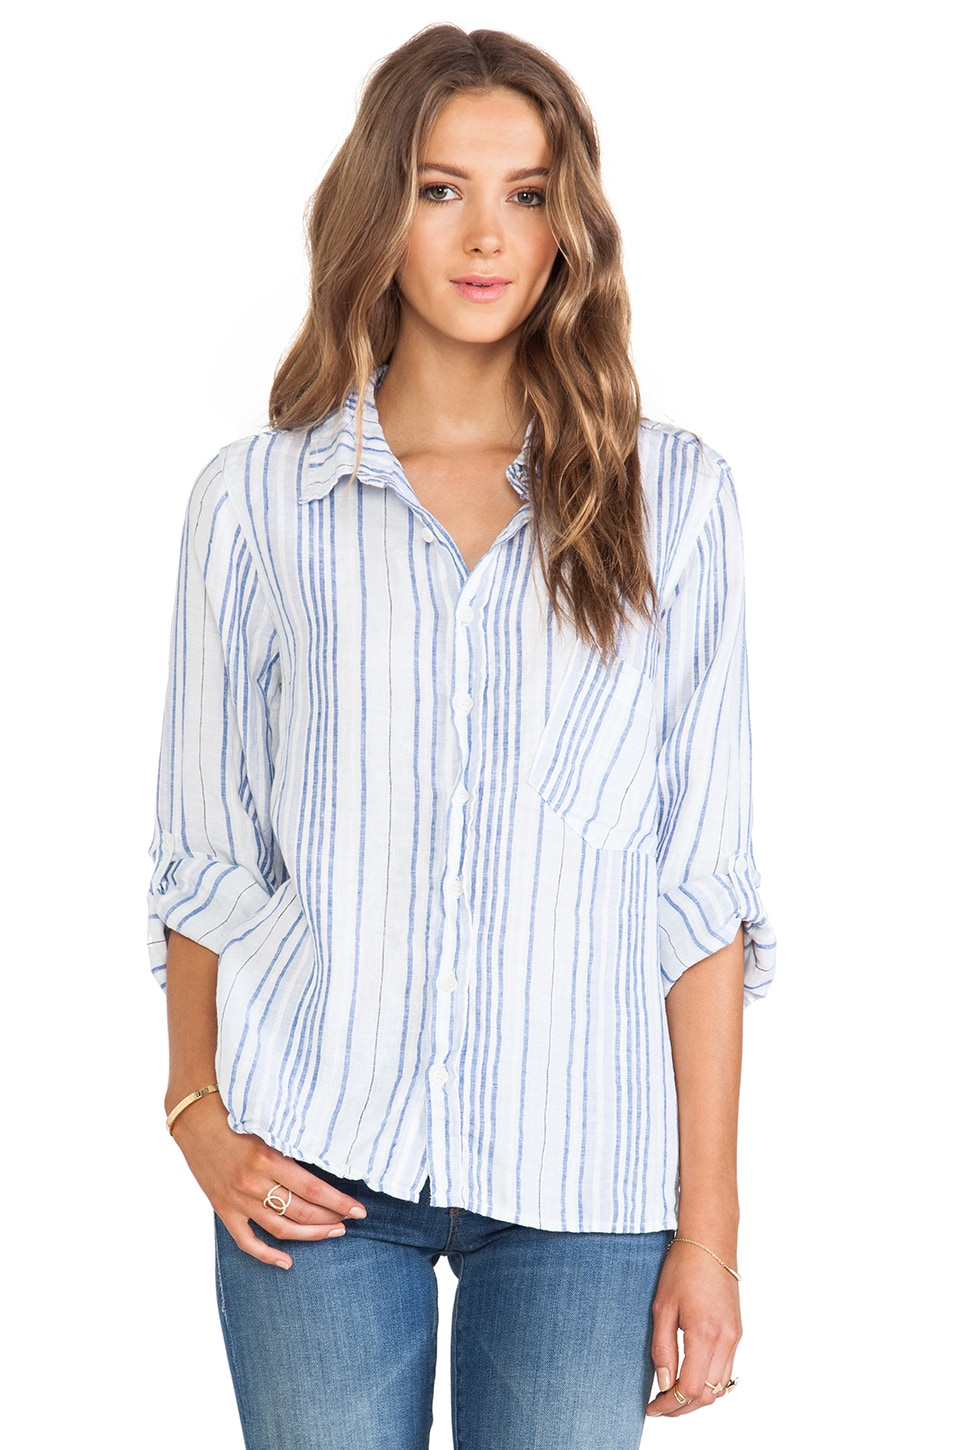 CP SHADES Jay Striped Shirt in Blue